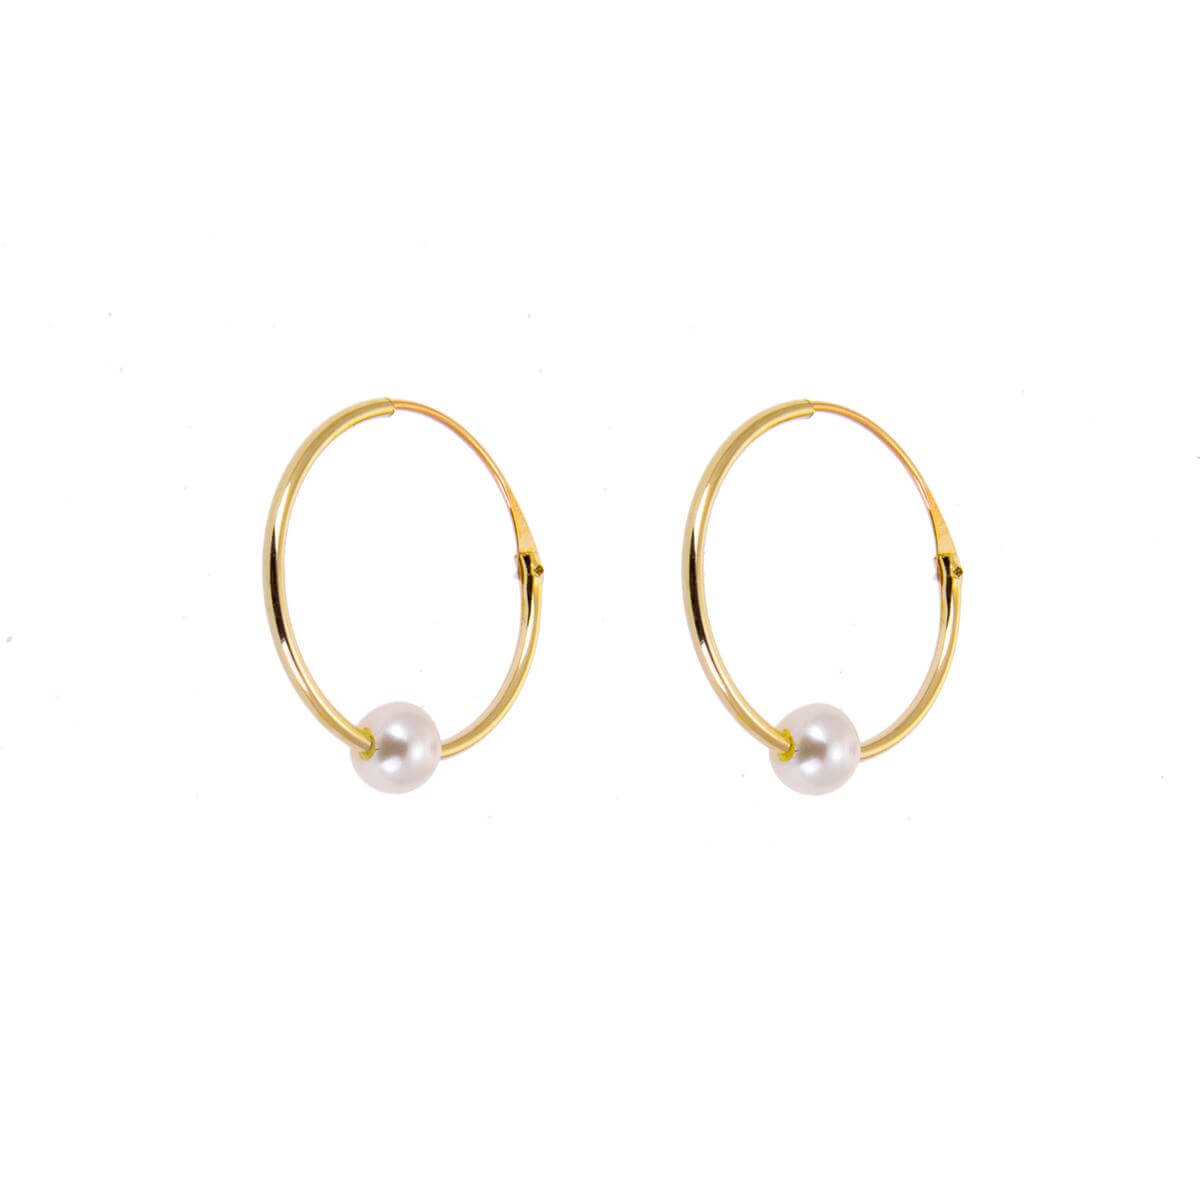 9ct Yellow Gold Hoop Earrings with Pearl